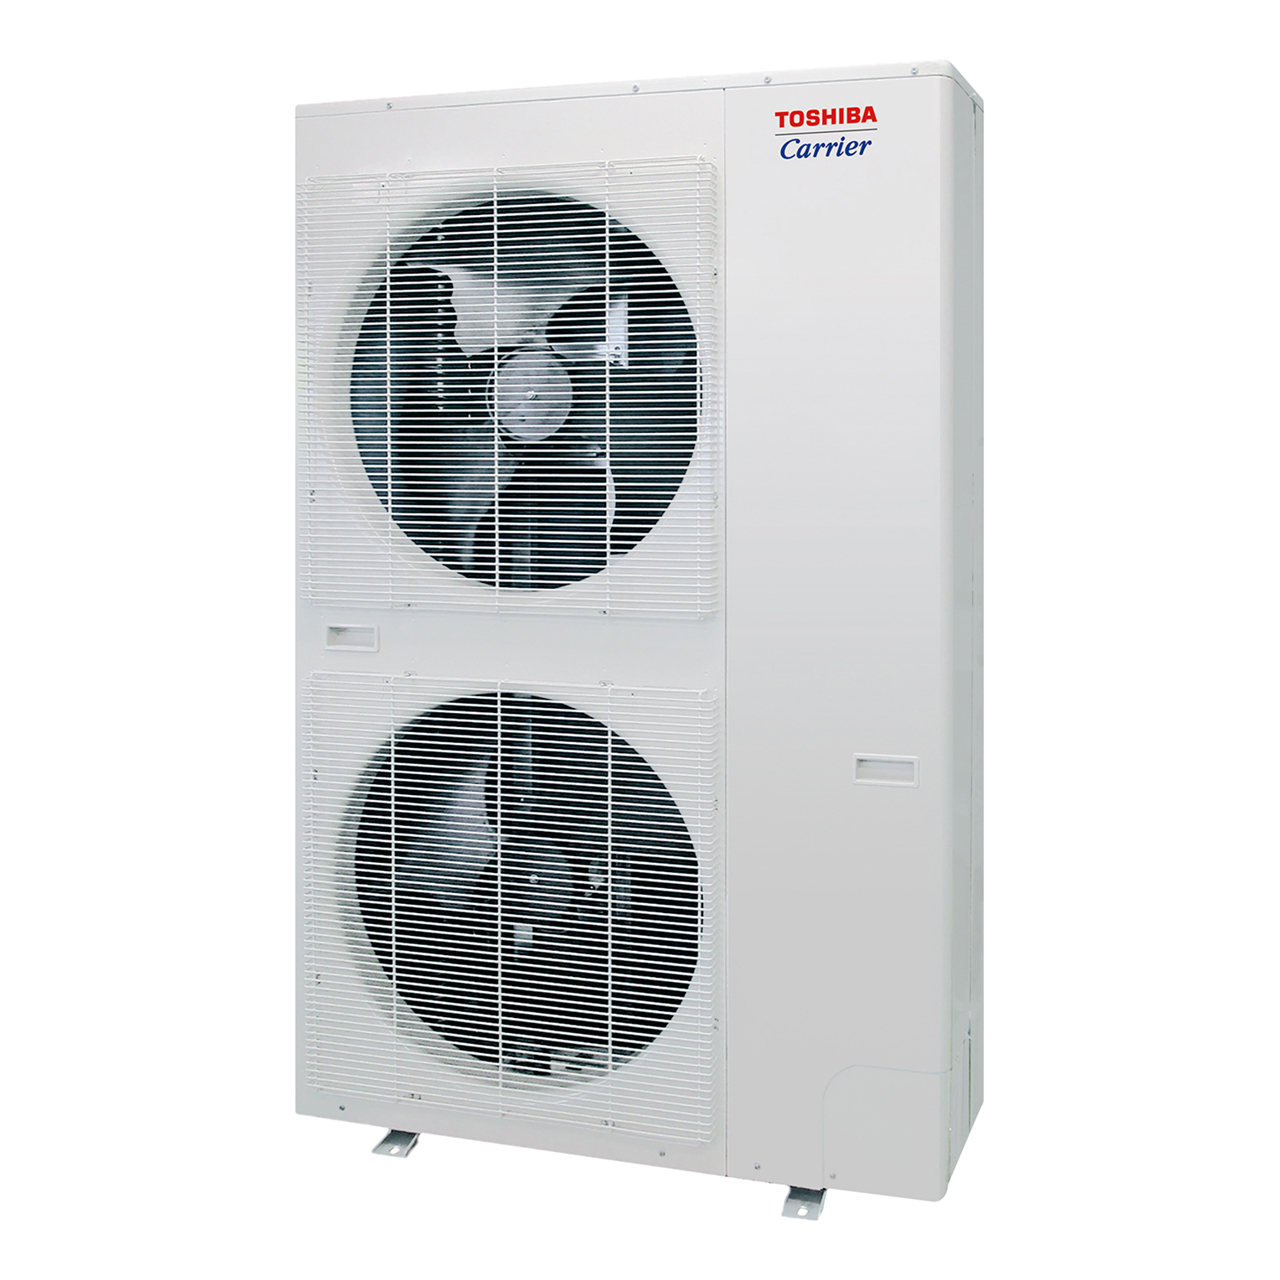 carrier-mcy7-vrf-single-phase-heat-pump-system